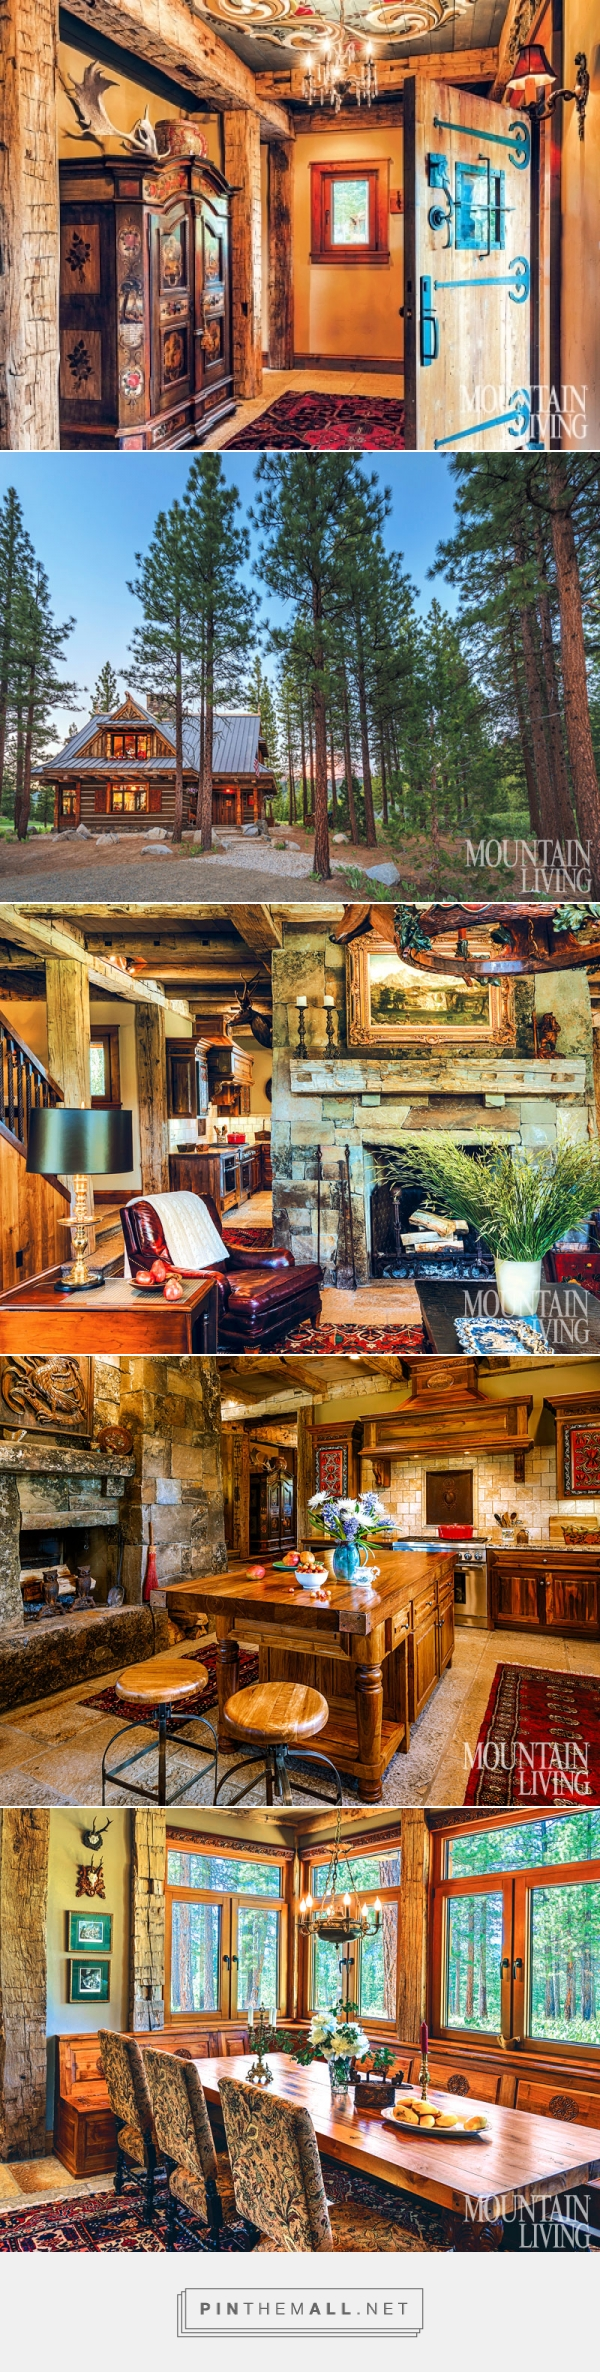 A Handcrafted and Historic Sierra Nevada Cabin